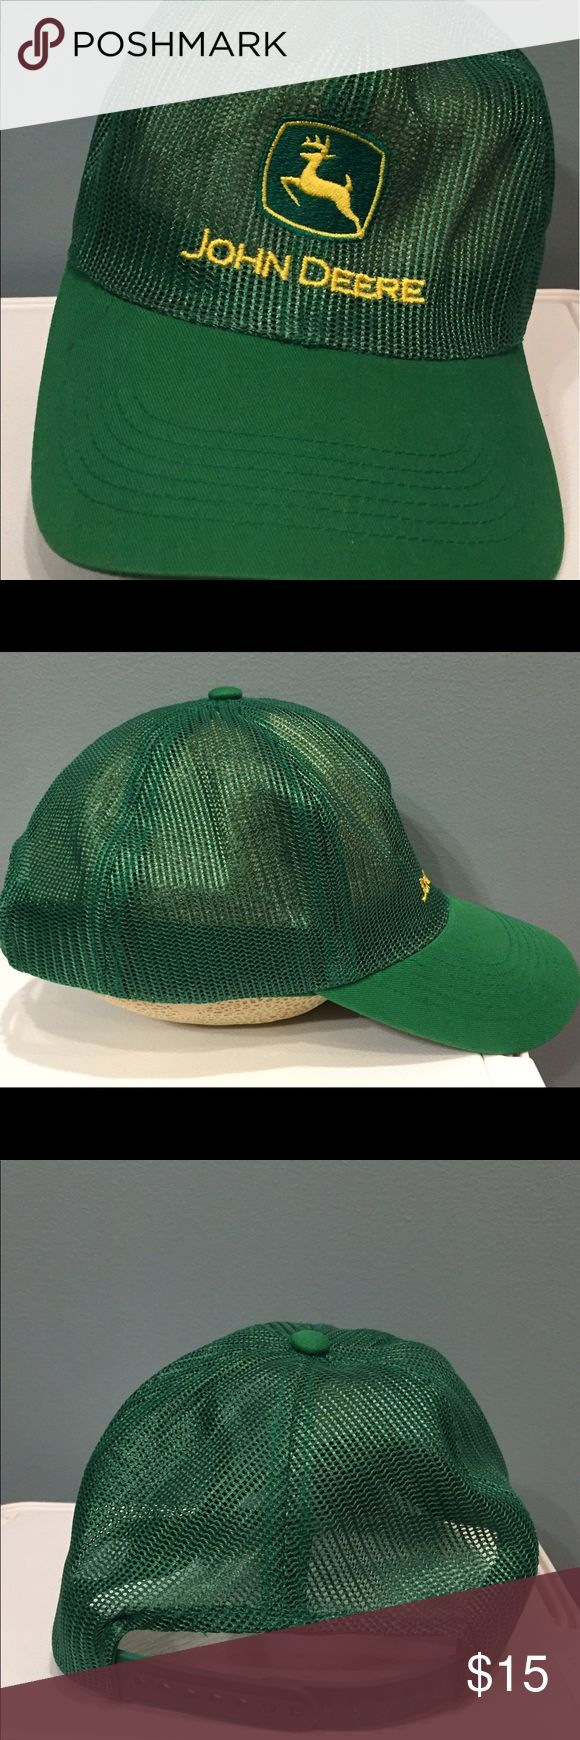 John Deere full mesh SnapBack hat John Deere full mesh SnapBack hat. One size fits all. Good condition. Just needs to be worn for a while to put the proper shape back in it. john deer Accessories Hats